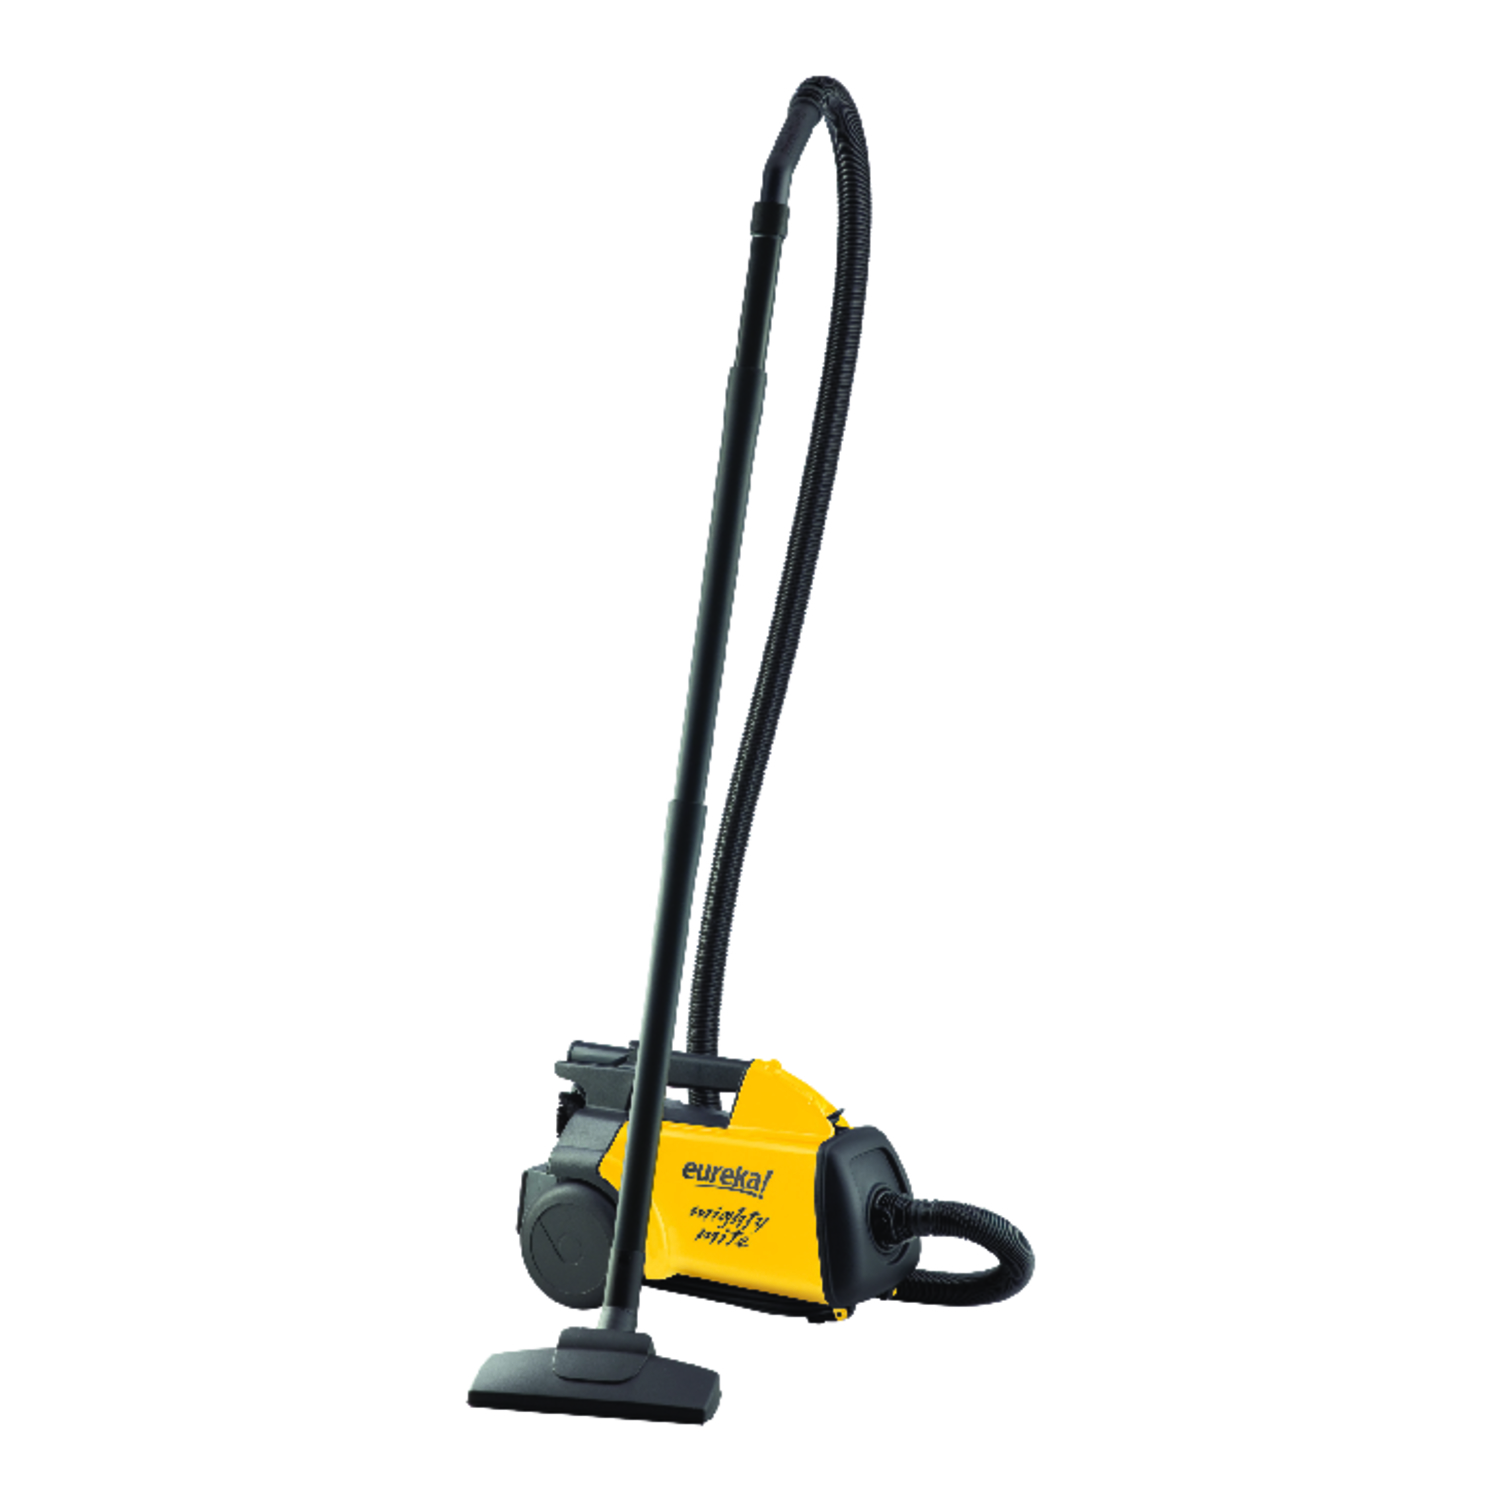 Eureka Mighty Mite Bagged Canister Vacuum 12 Amps Hepa Yellow Ace Cordr Marine Electrical Parts Wiring